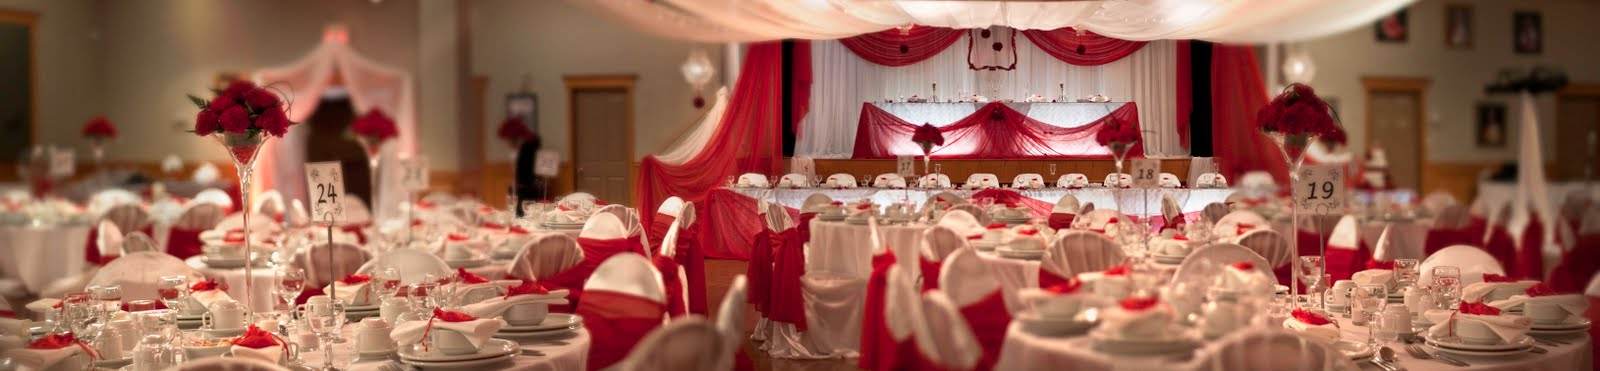 Red And Silver Wedding Reception Decorations Le